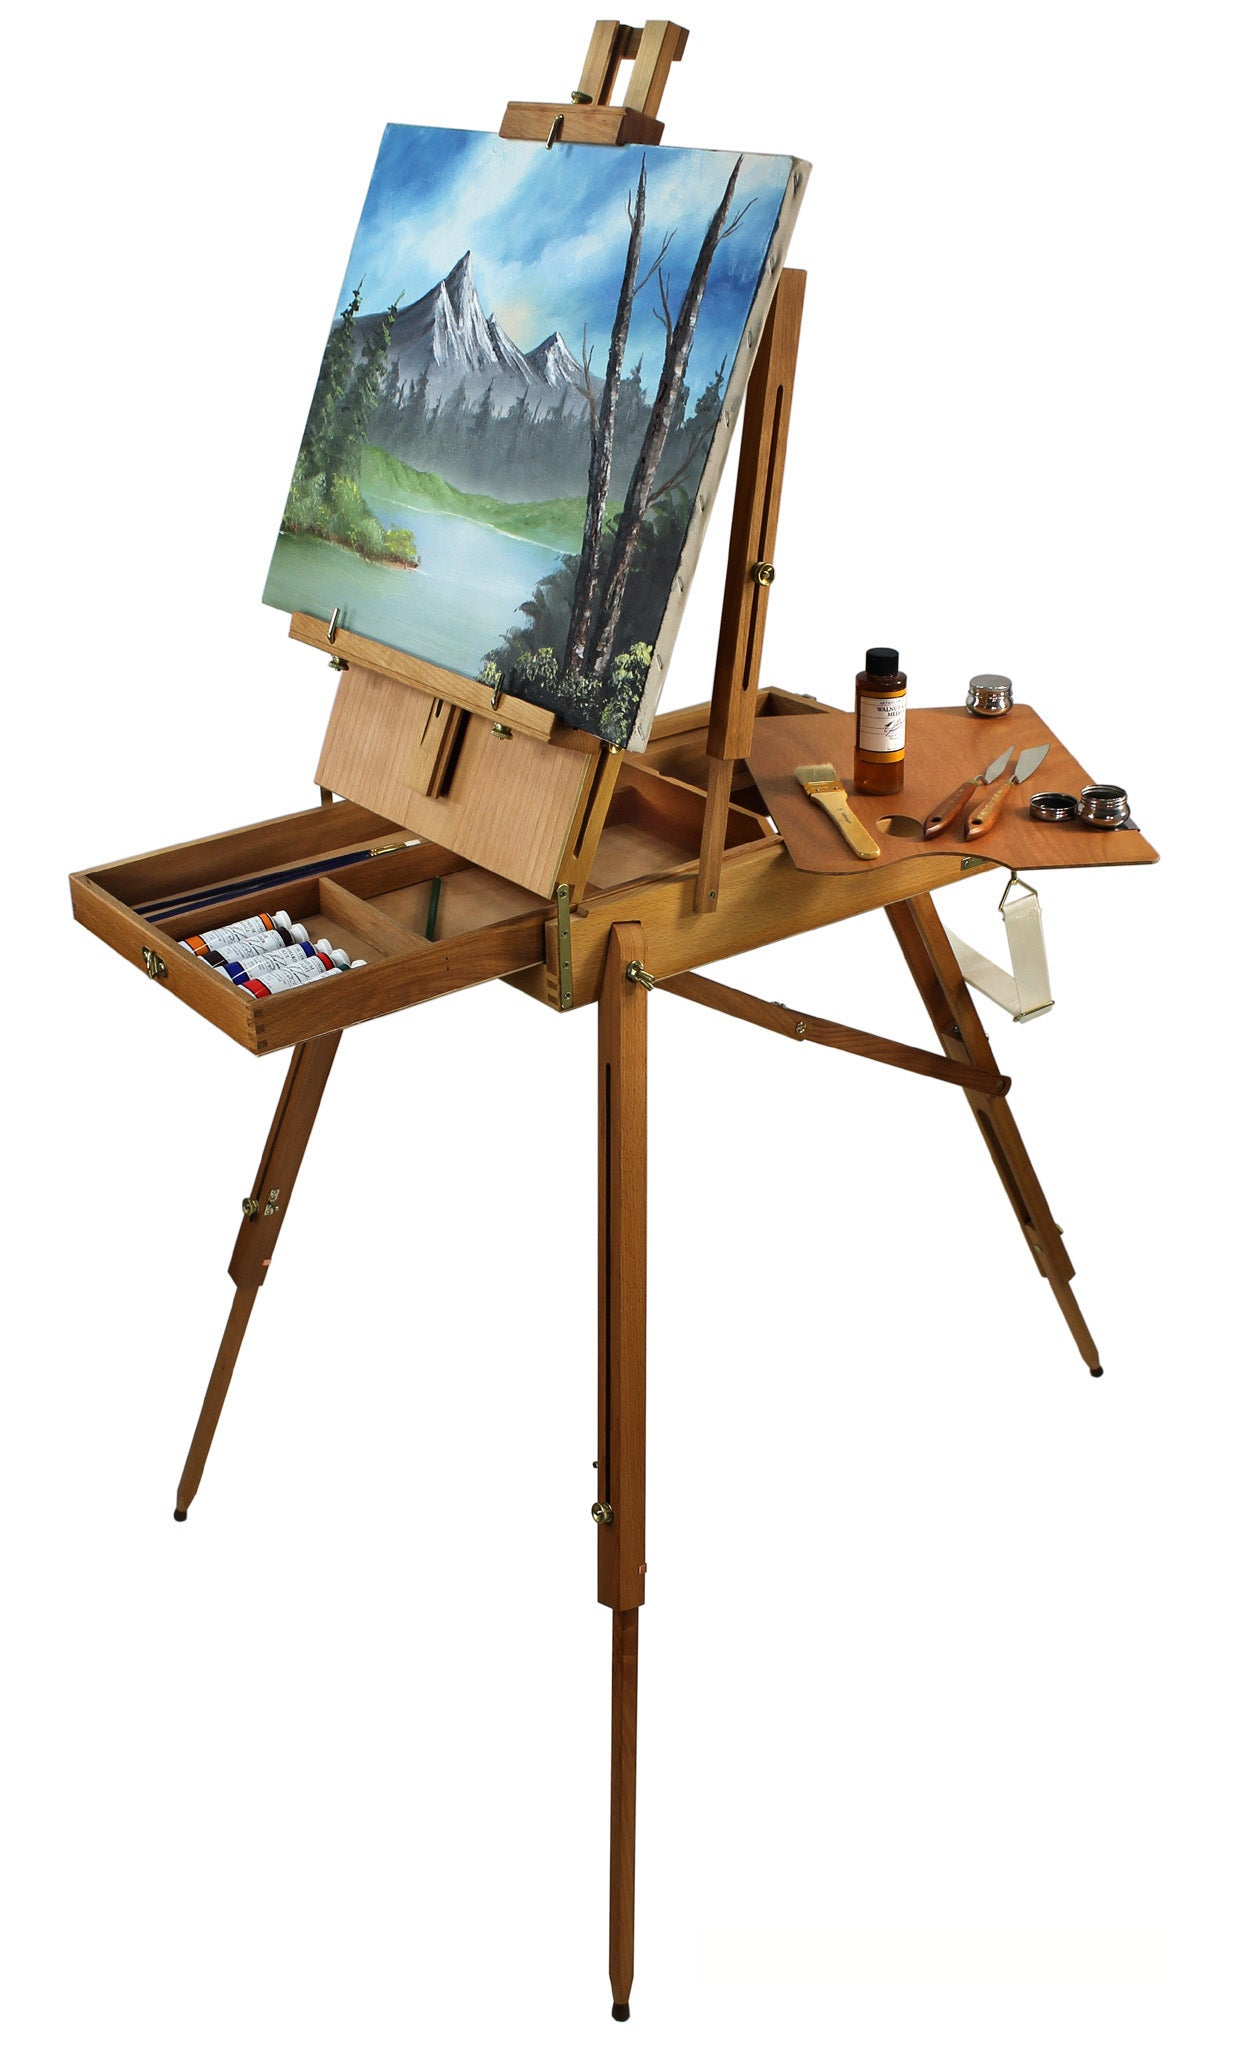 Hardwood french art easel w comprehensive artist quality painting supplies set - High quality exterior paint set ...